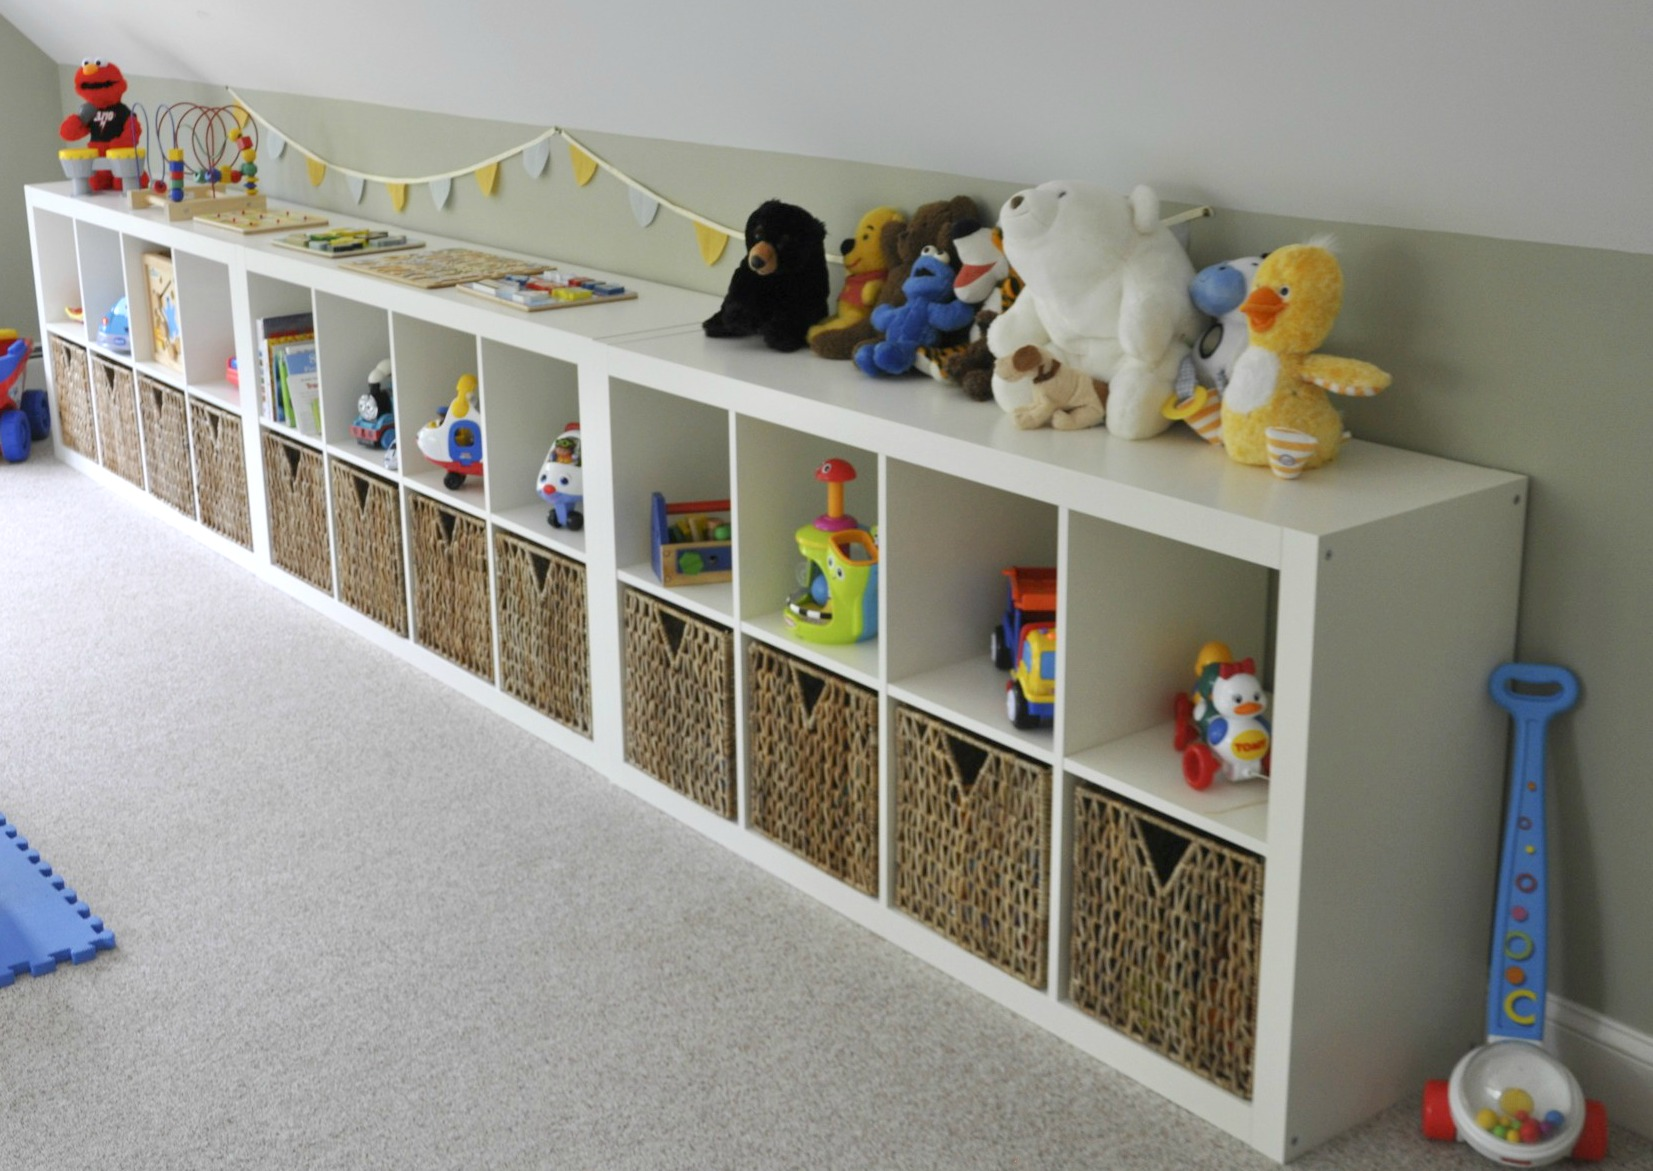 Ikea Kallax Kinder Ikea Expedit Playroom Storage 2 Sisters 2 Cities